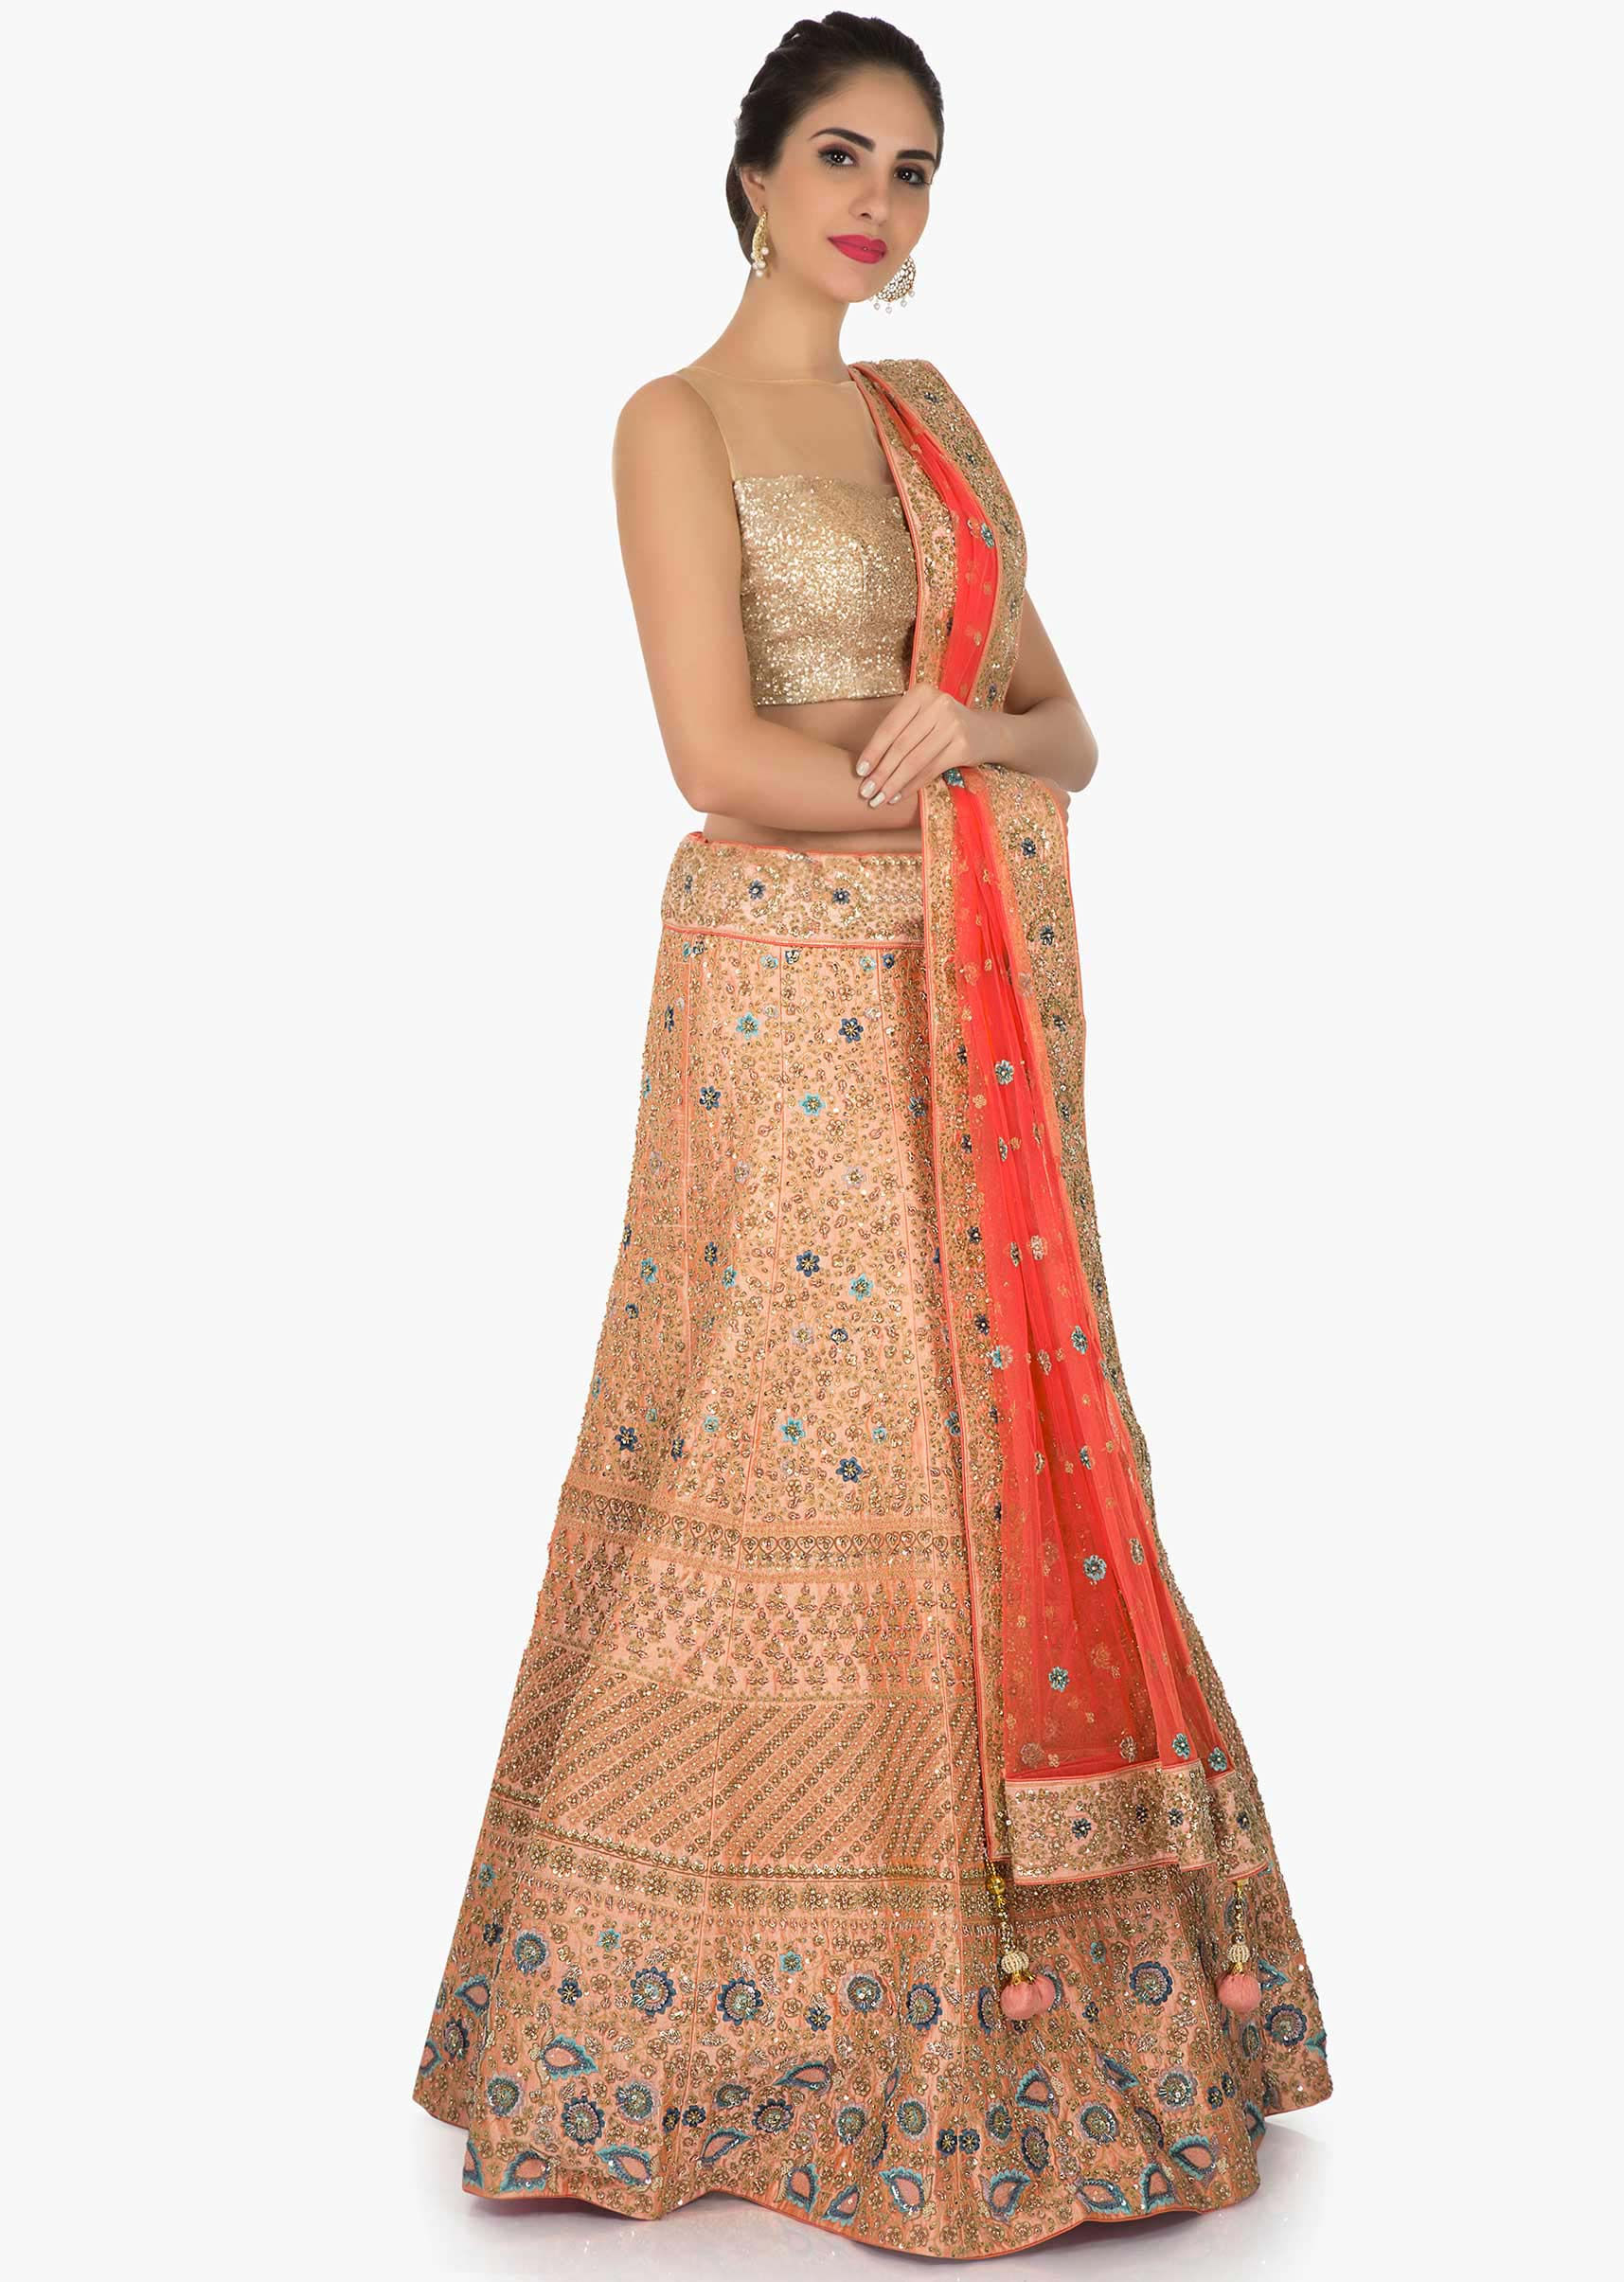 73c63068a7f626 Peach lehenga in raw silk adorn with resham zari embroidery only on KalkiMore  Detail